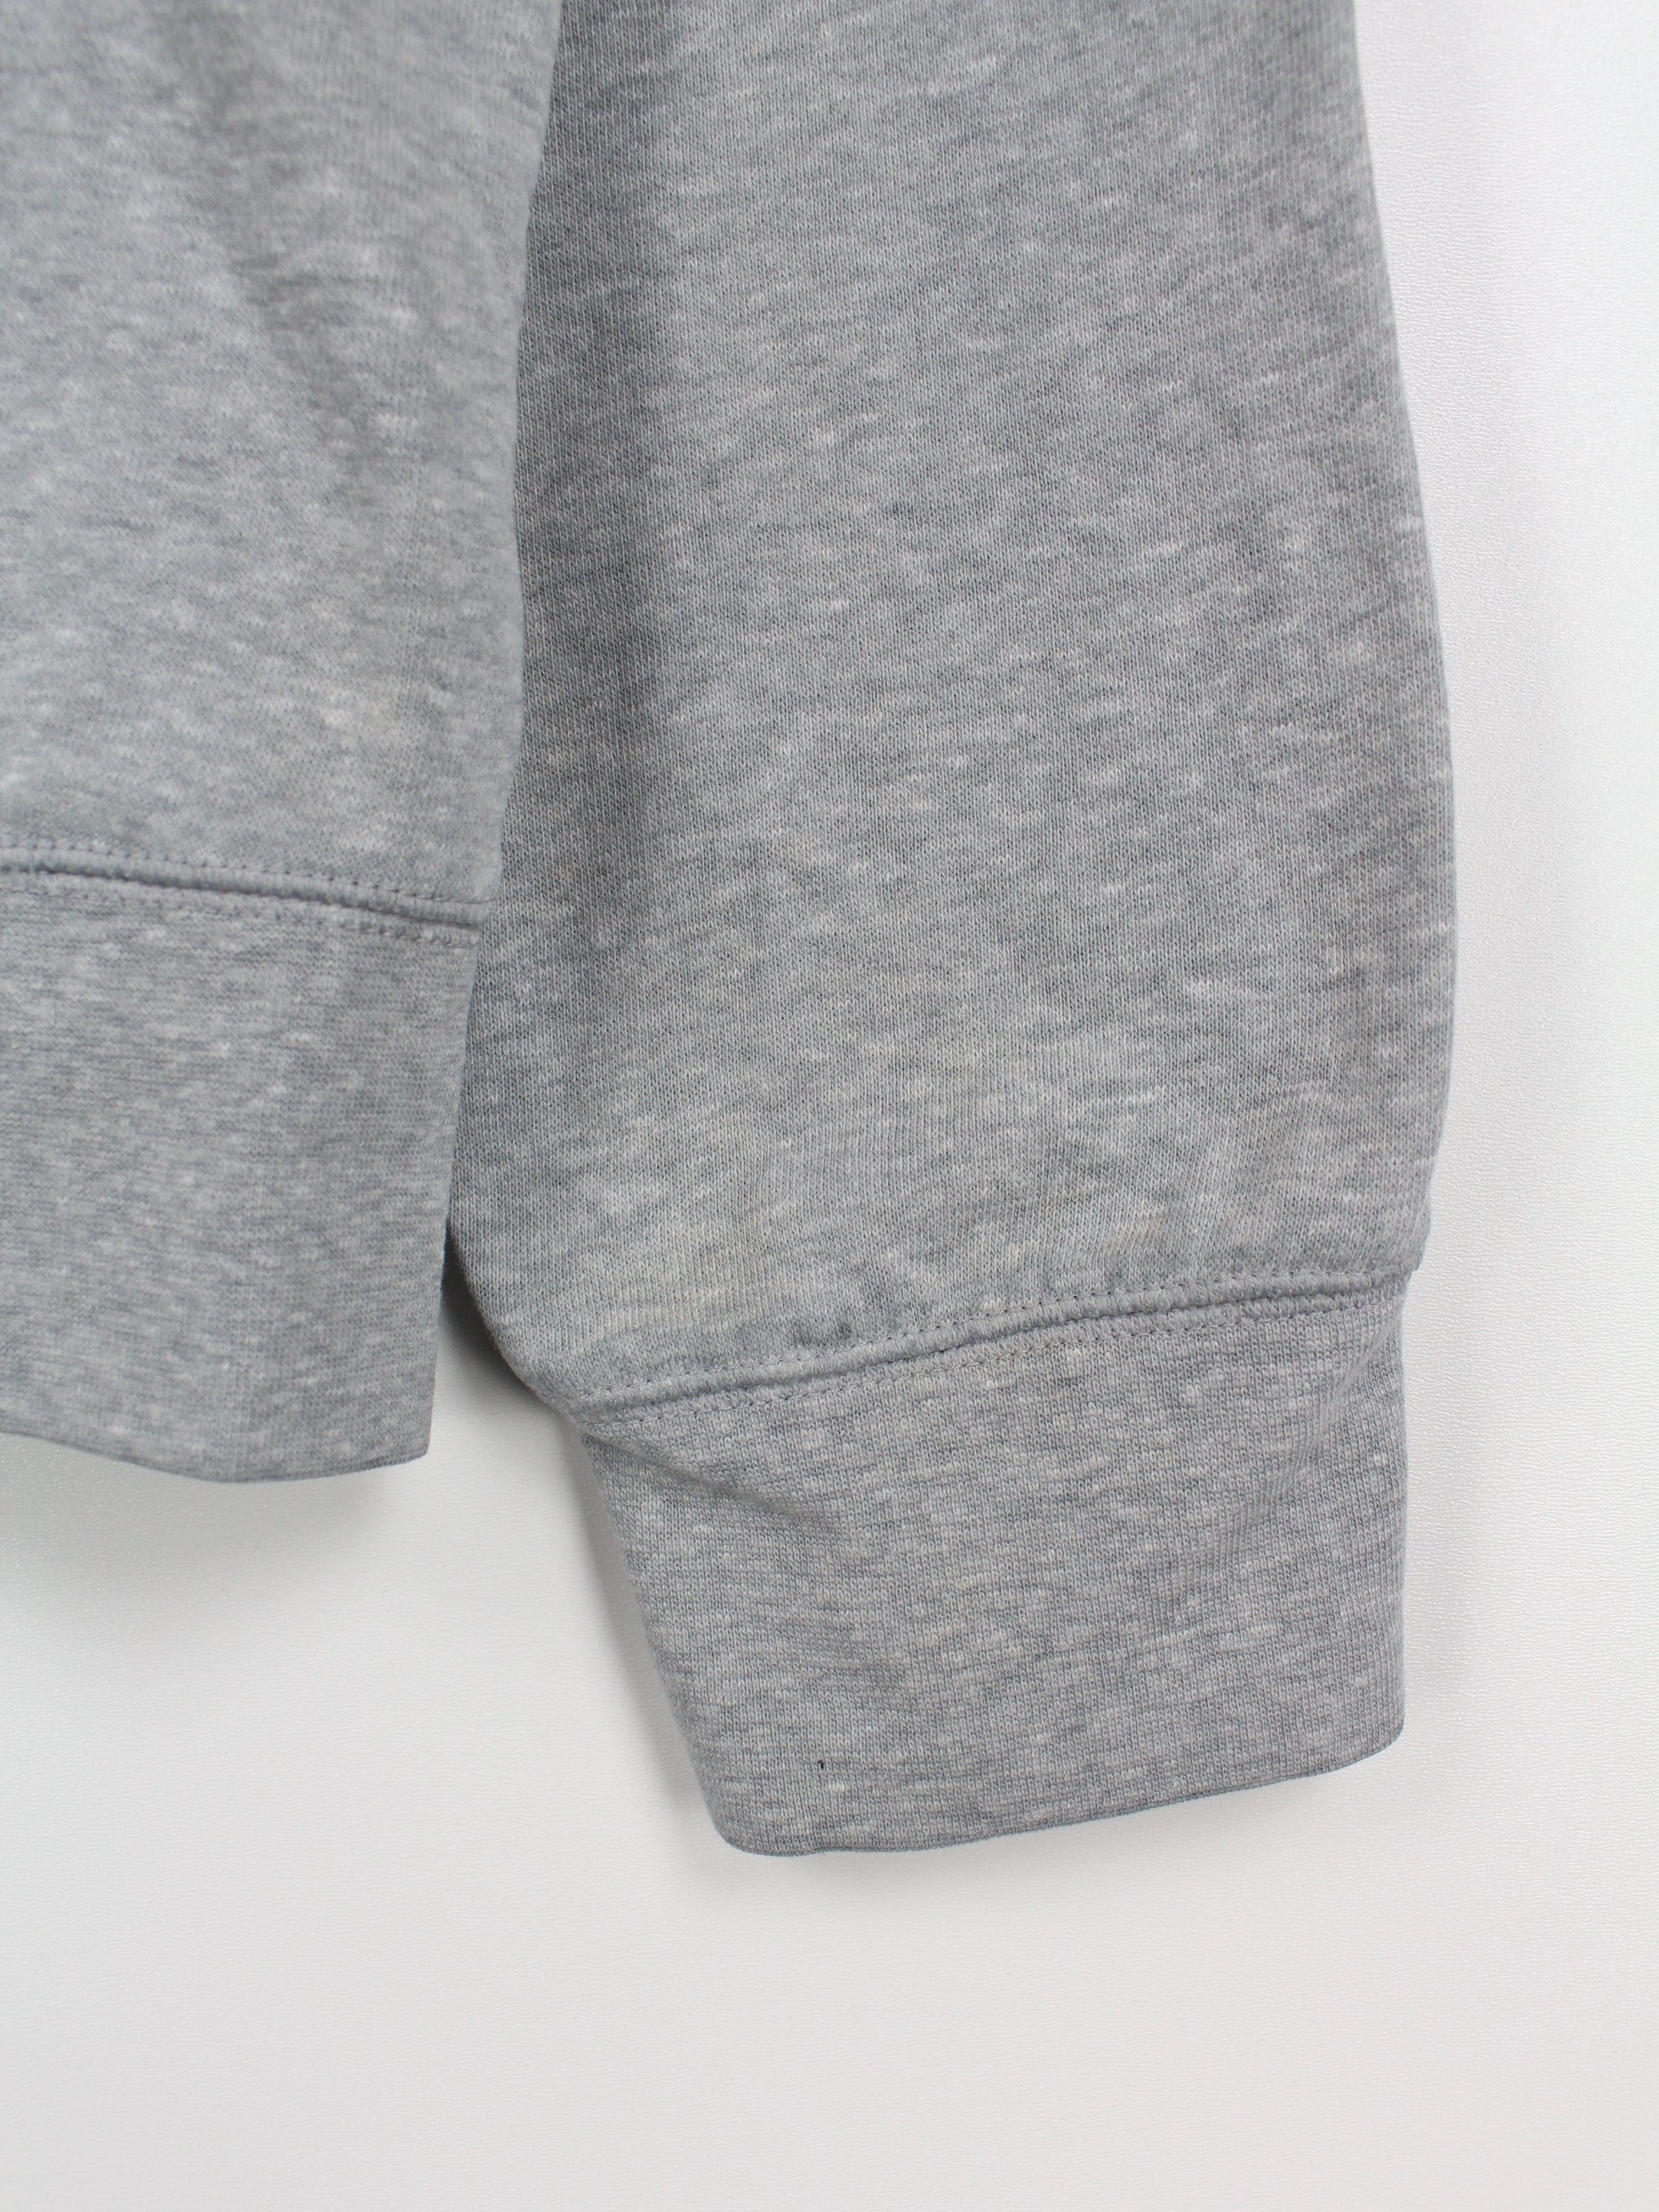 Nike Center - Swoosh Tank Top Blau M